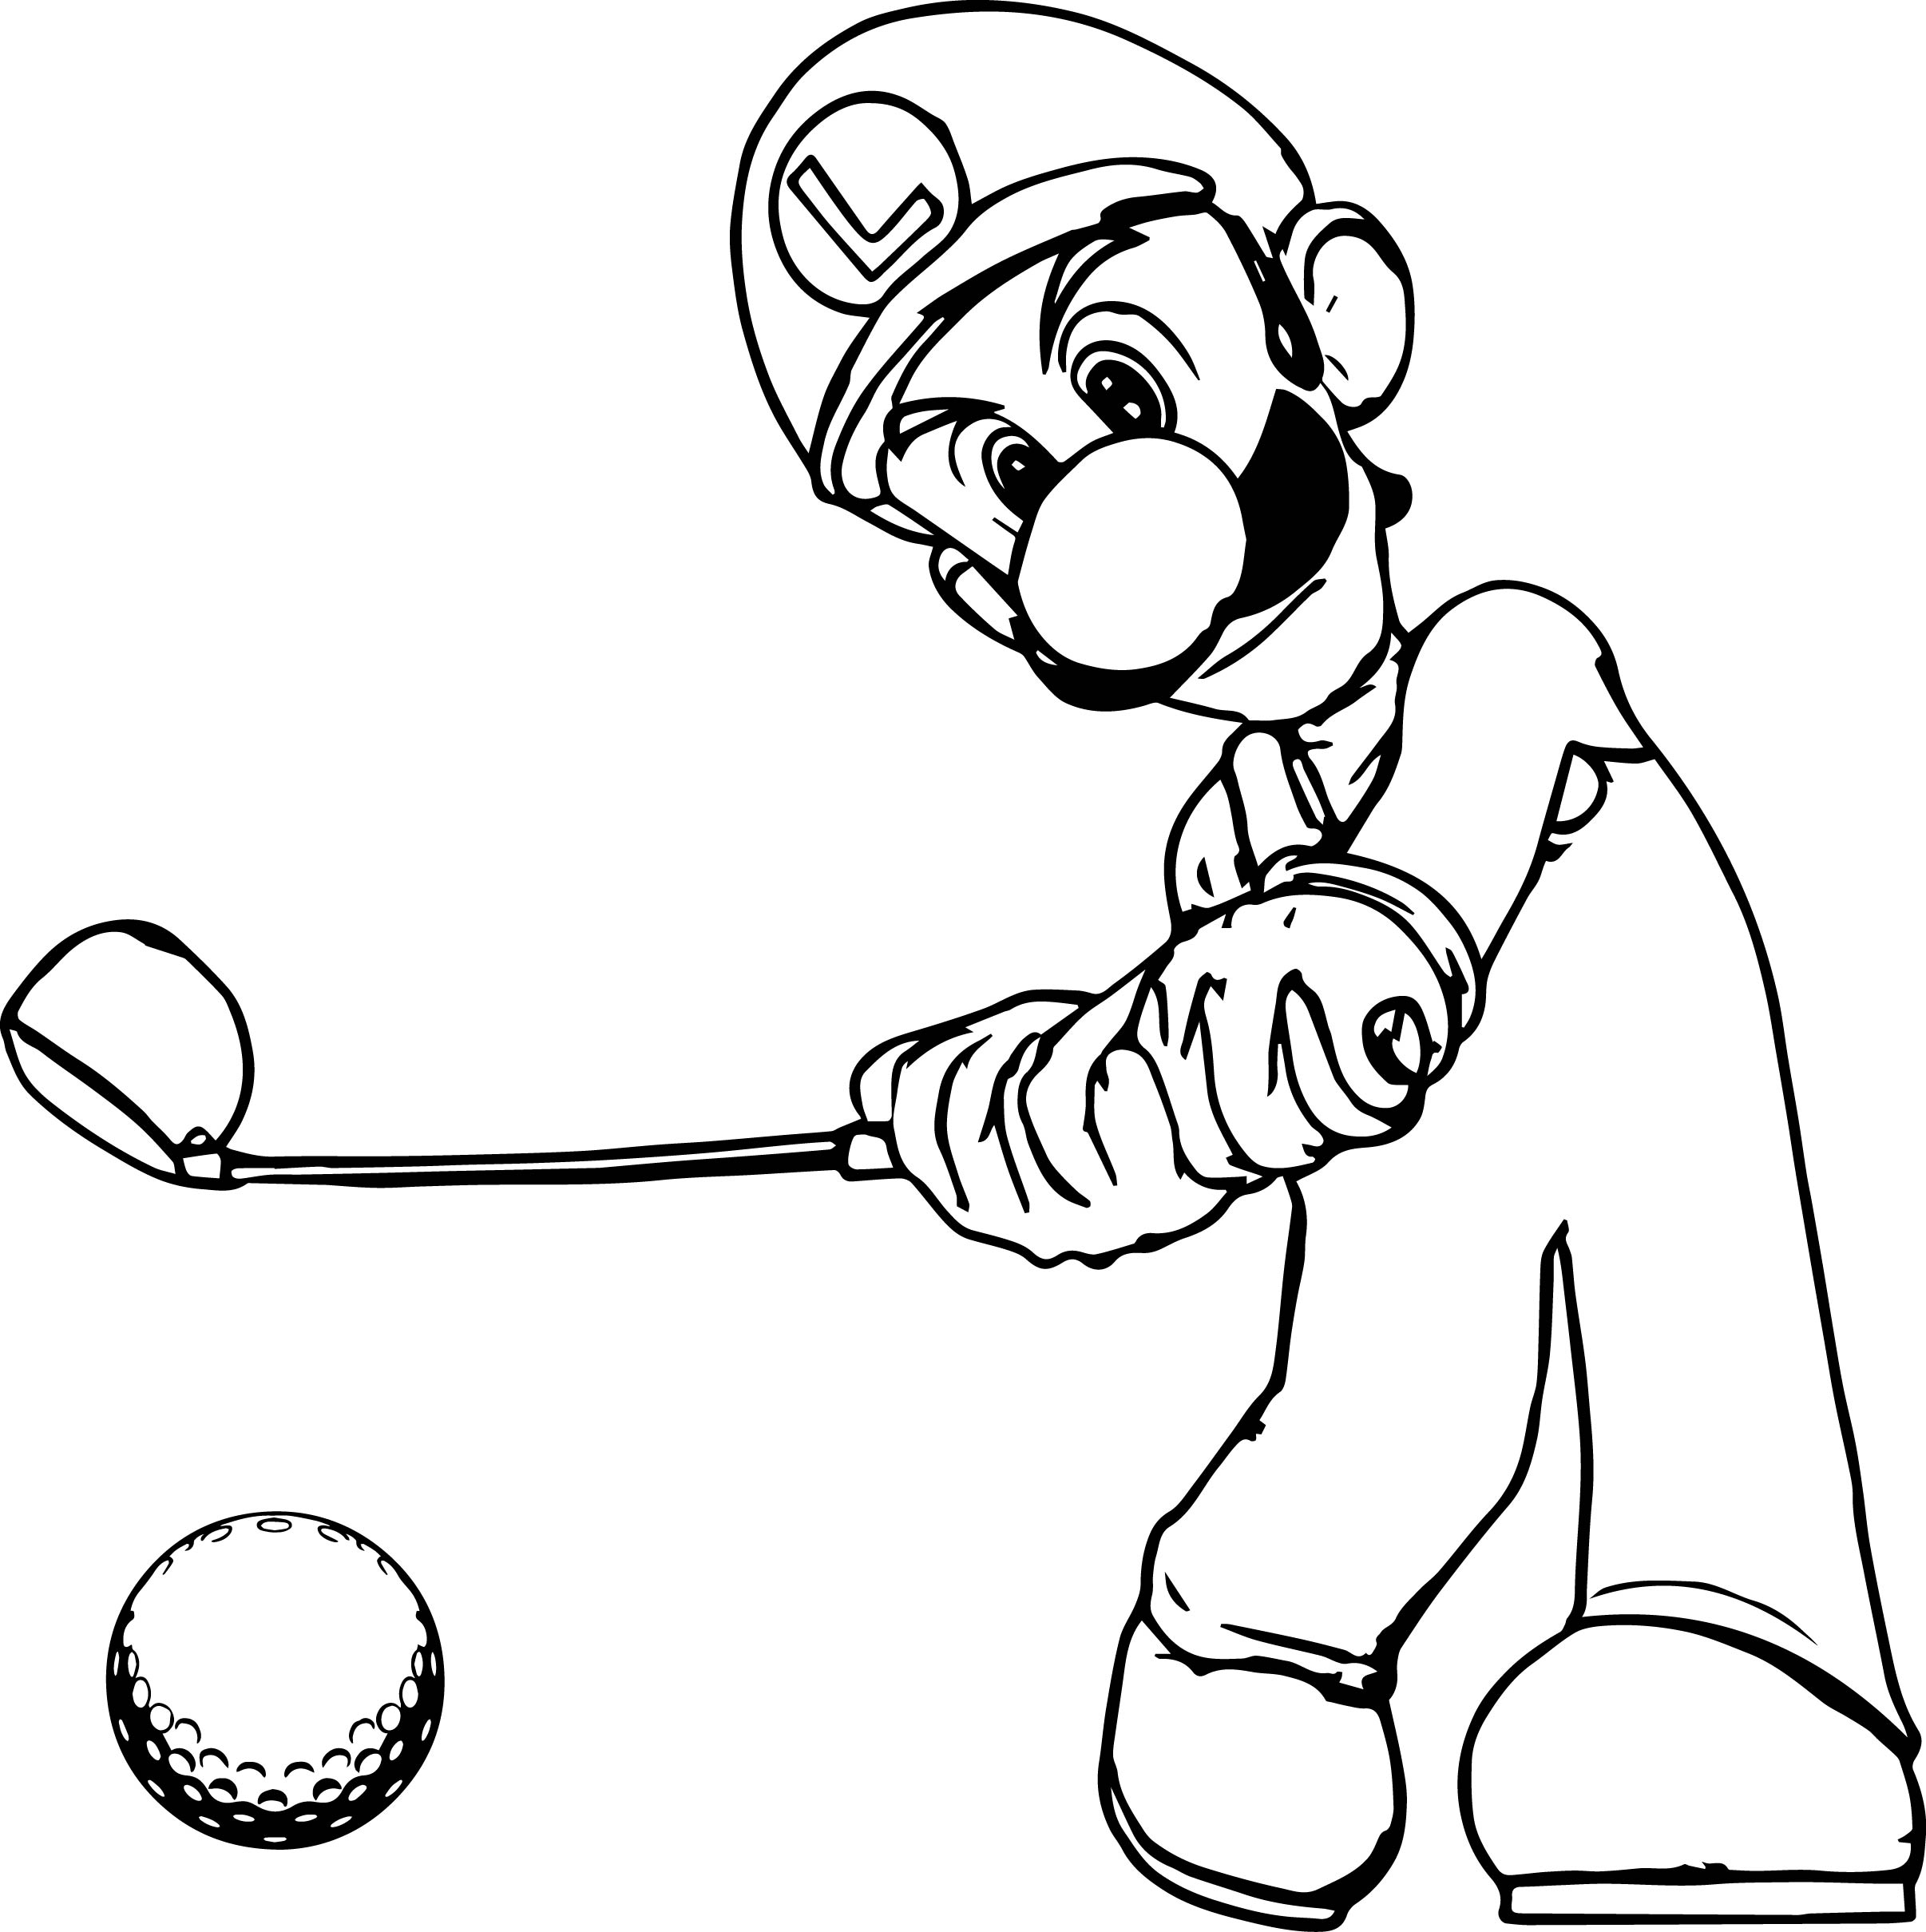 2412x2419 Gallant Golf Coloring Pages Clubs Course Golfers Girl Golfer Sheet